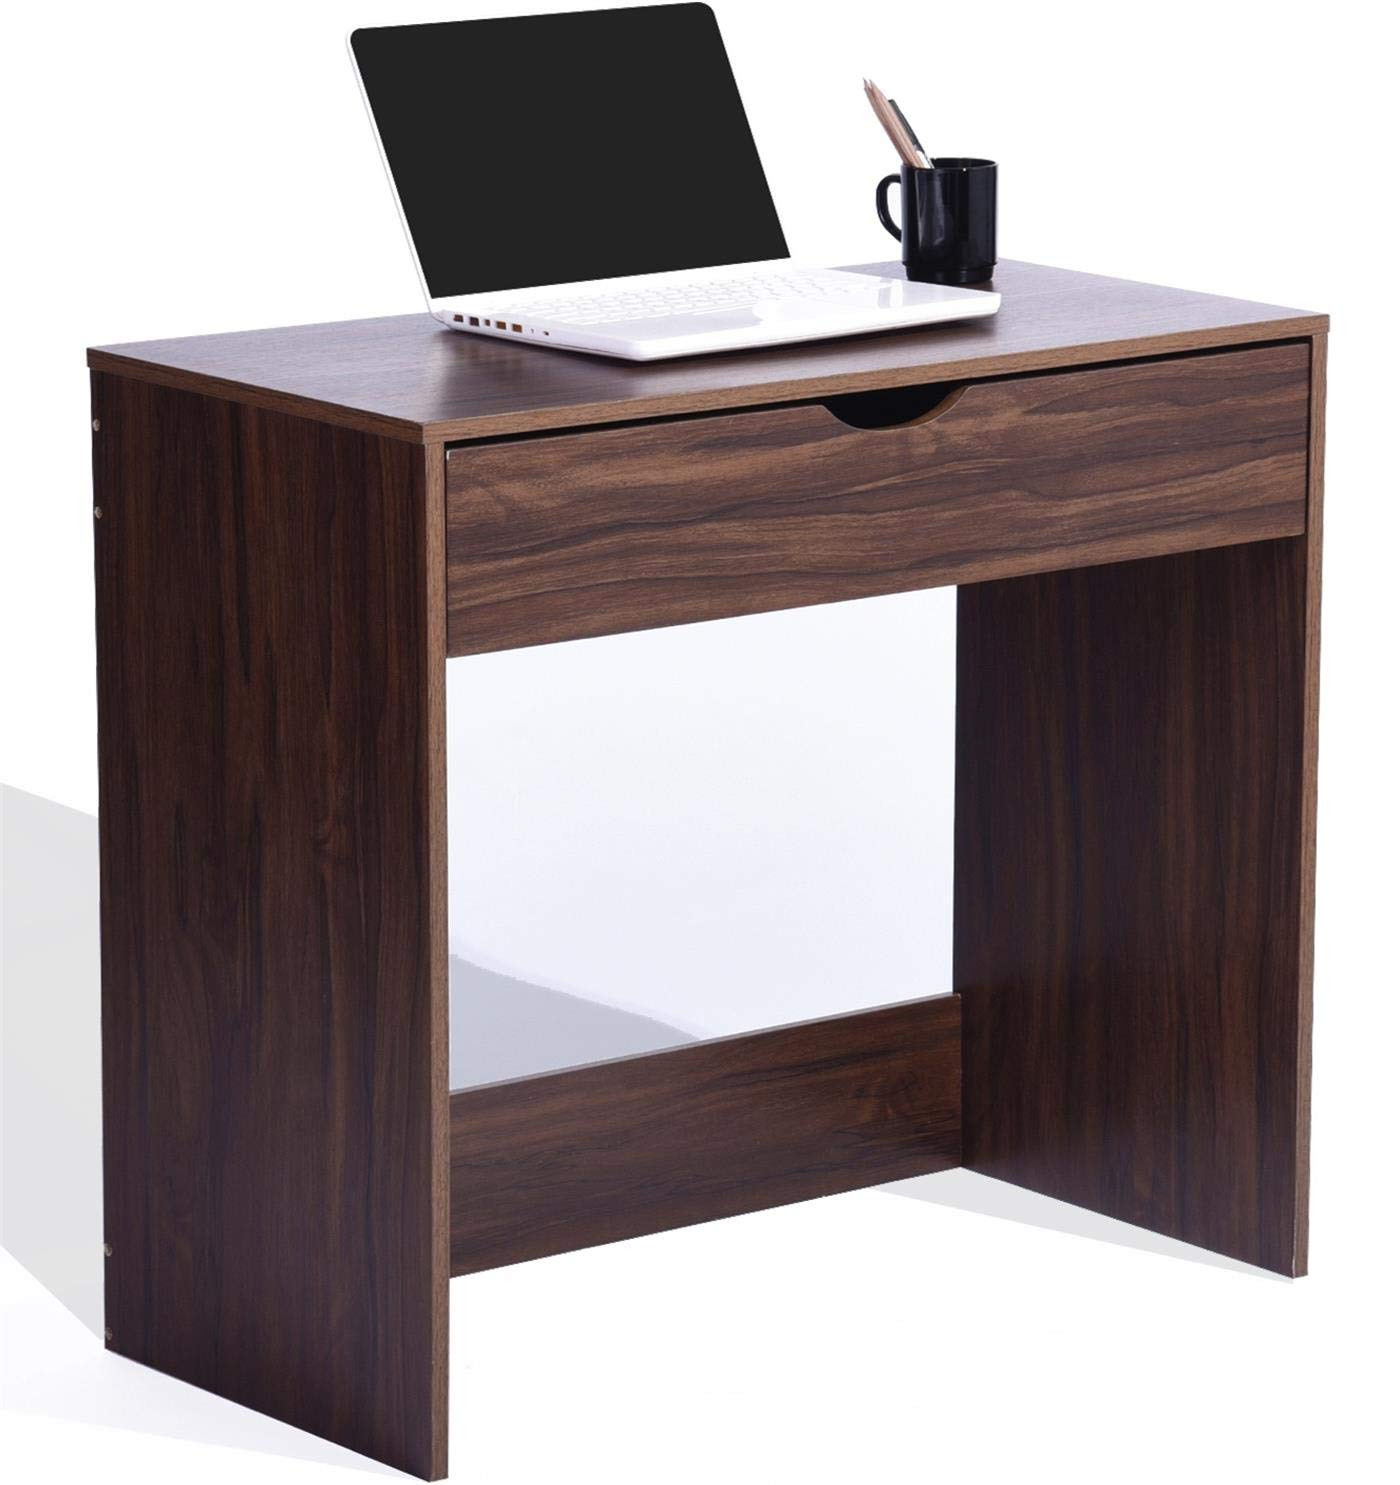 Computer Writing Desk with 1 Storage Drawer Wooden Study Table Desk for Home Office, Walnut Brown TAR012